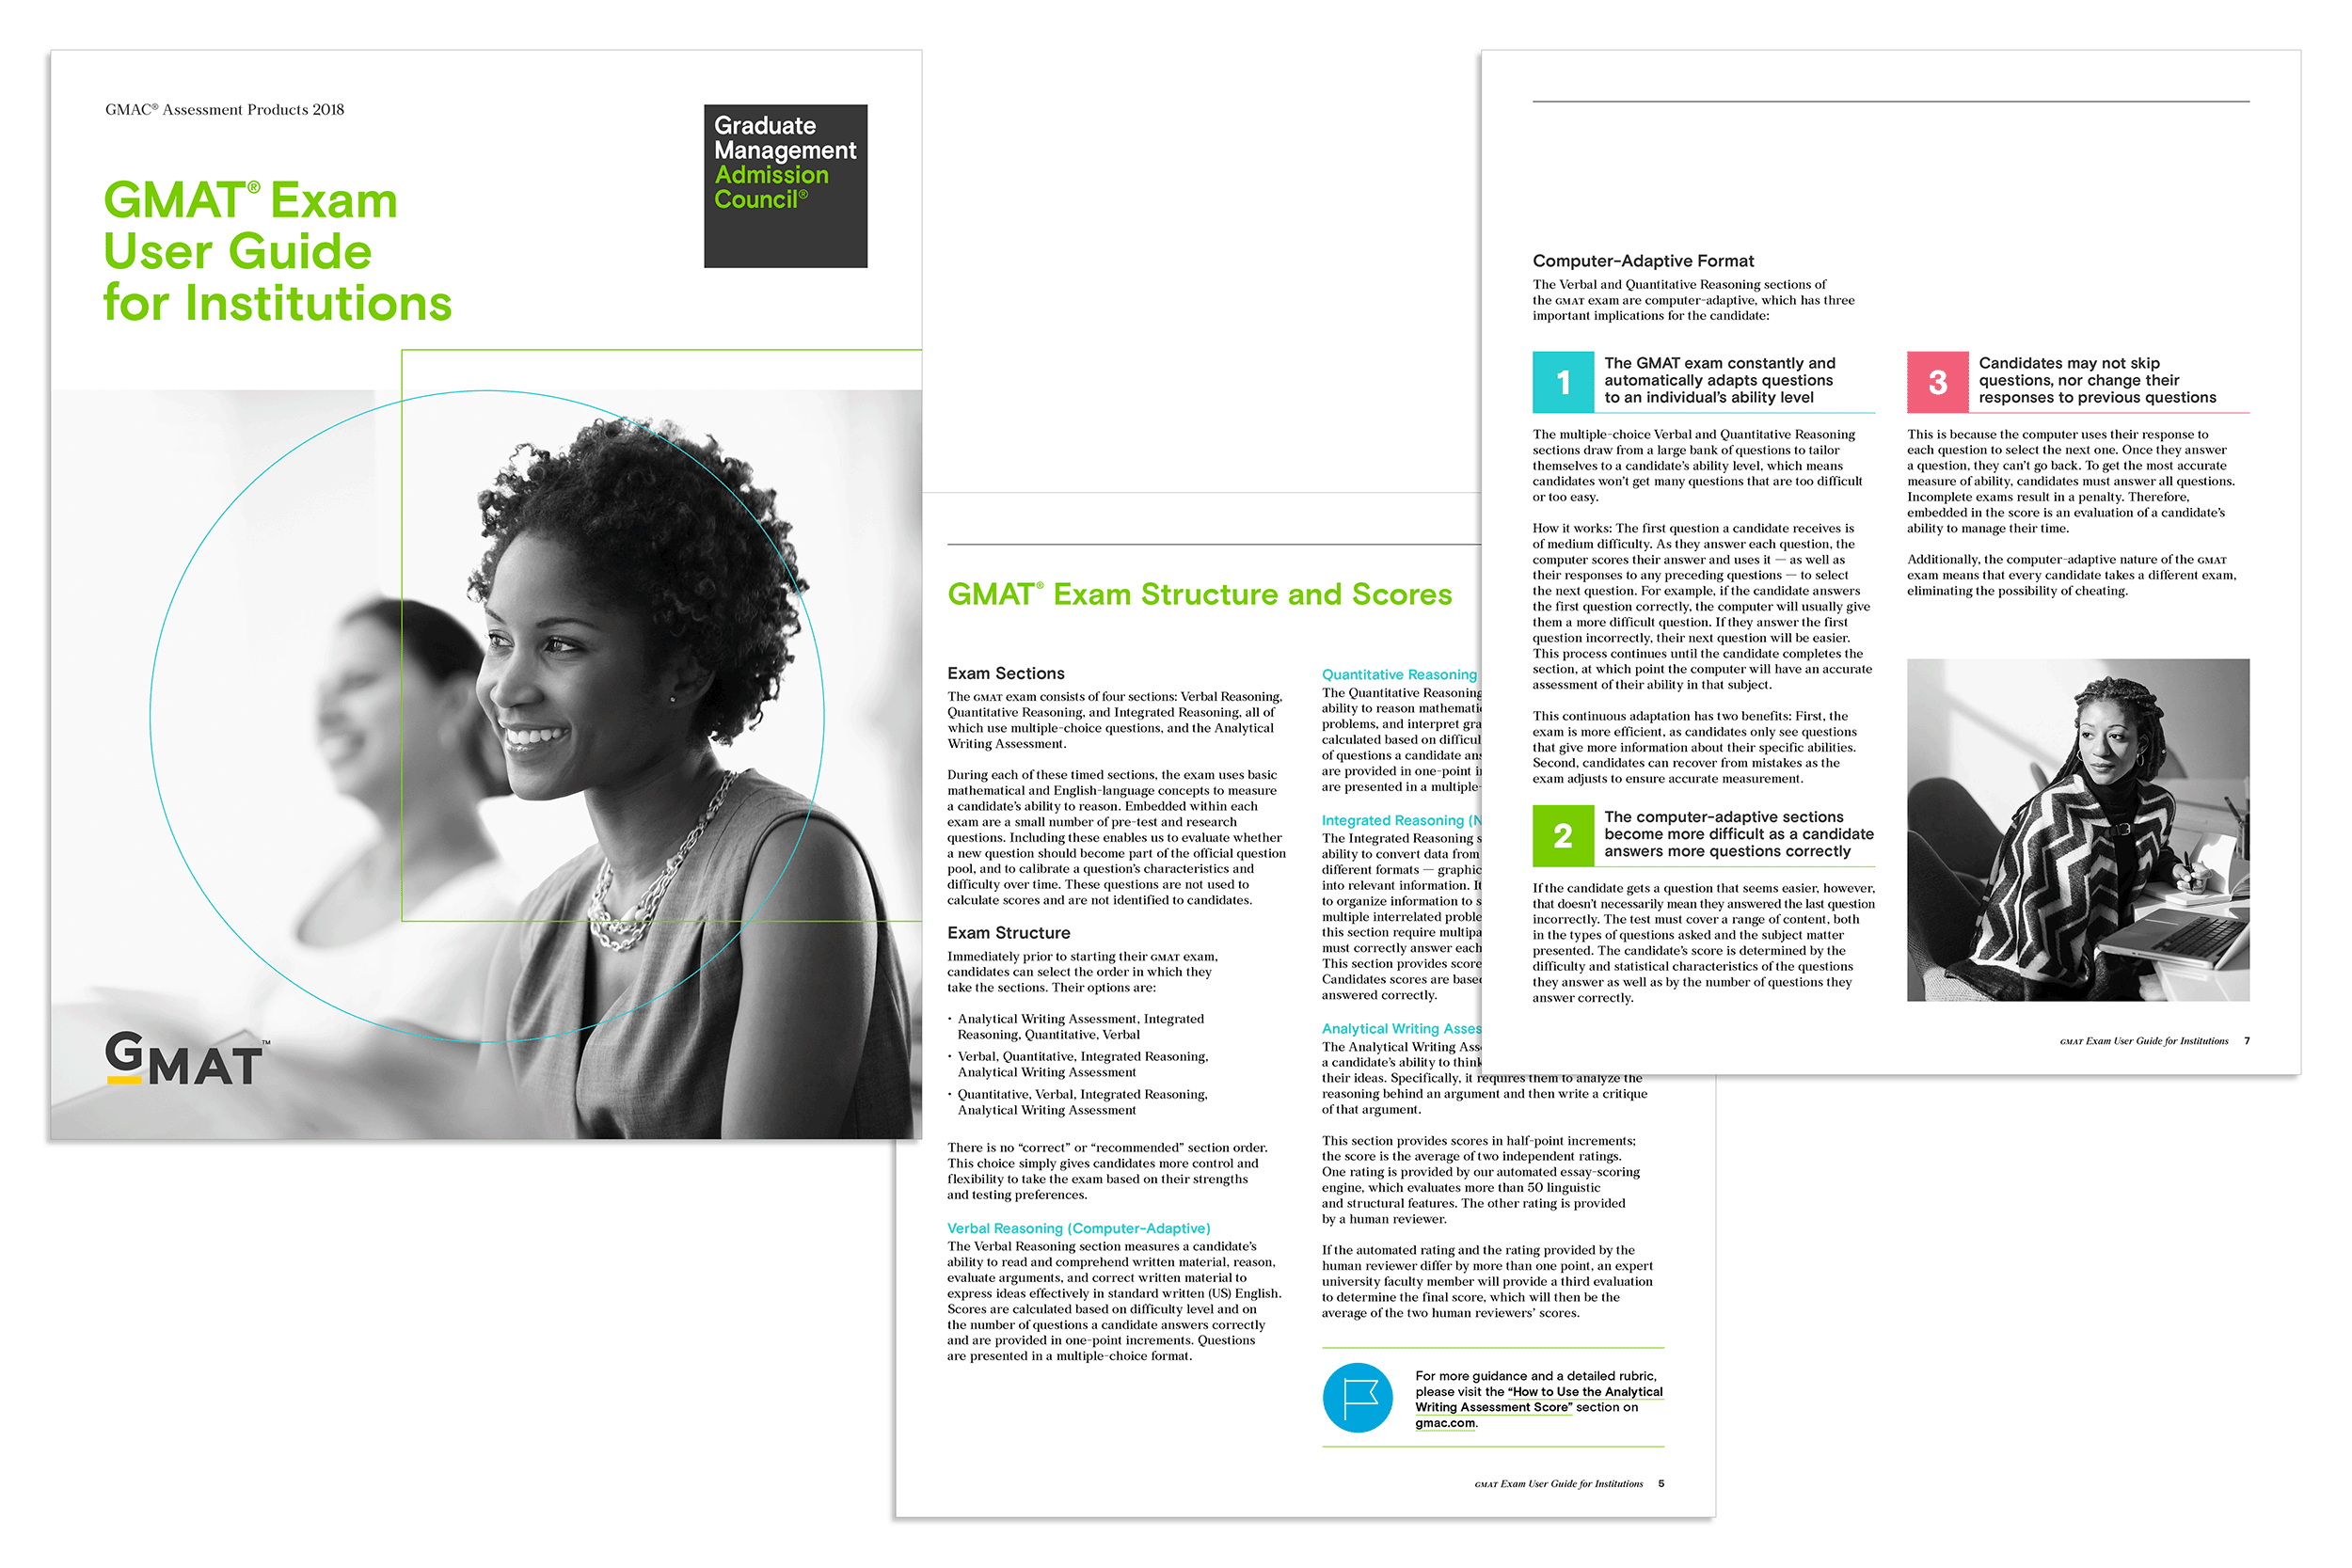 Brochure design by Virtual Apiary for GMAC